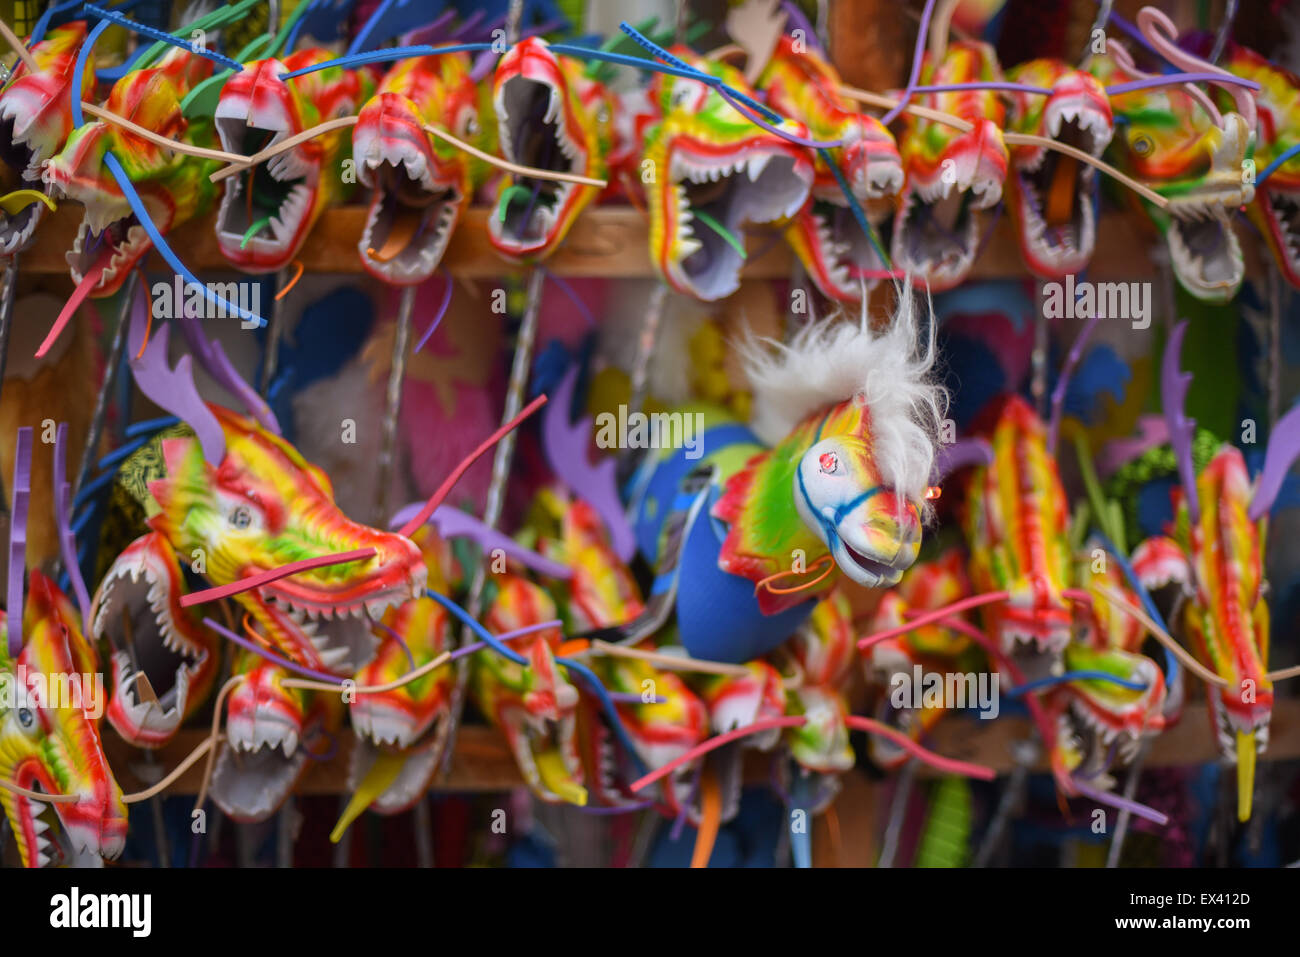 Dragon-like toys at a street vendor during the Lunar New Year celebration in Bandung, Indonesia. - Stock Image